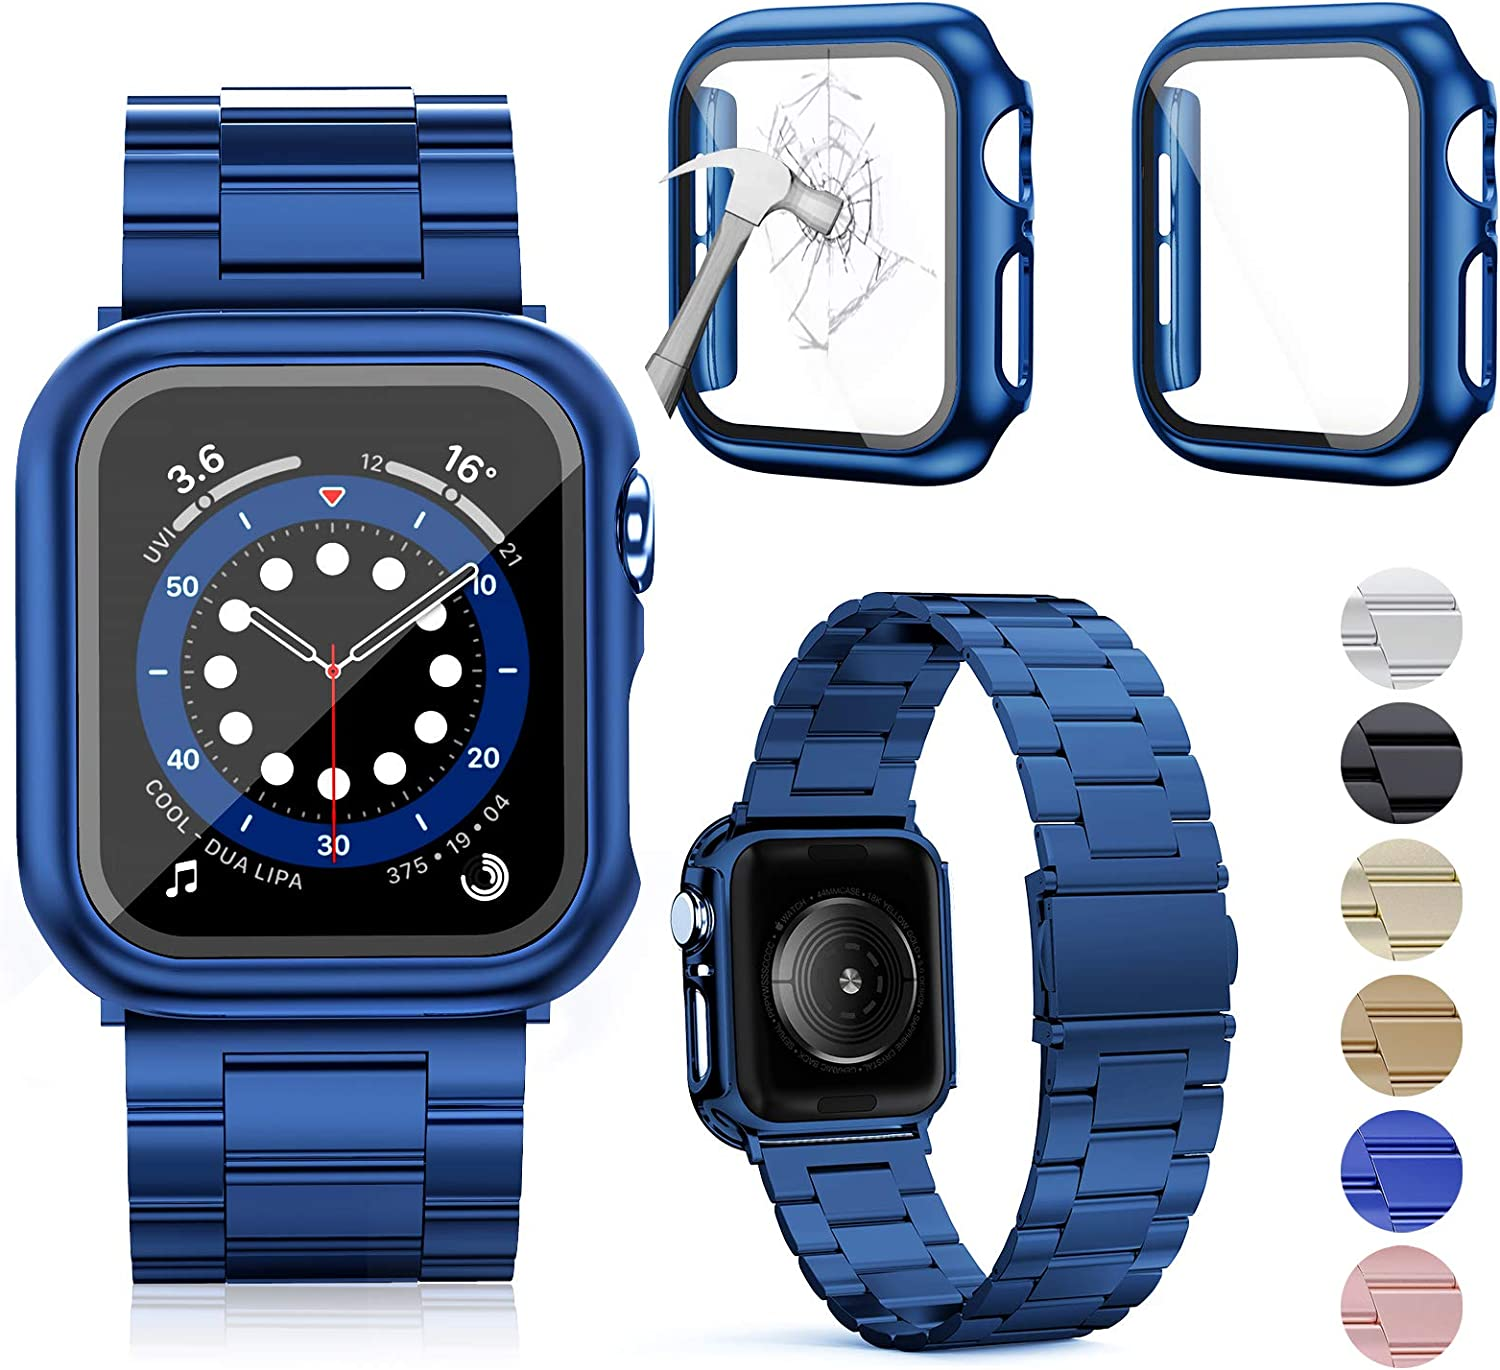 OMEE Compatible with Apple Watch Band 38mm/40mm/42mm/44mm with 2Pcs Case, Stainless Steel Metal Bands Business Replacement iWatch Strap for Apple Watch Series 6/5/4/3/2/1/SE